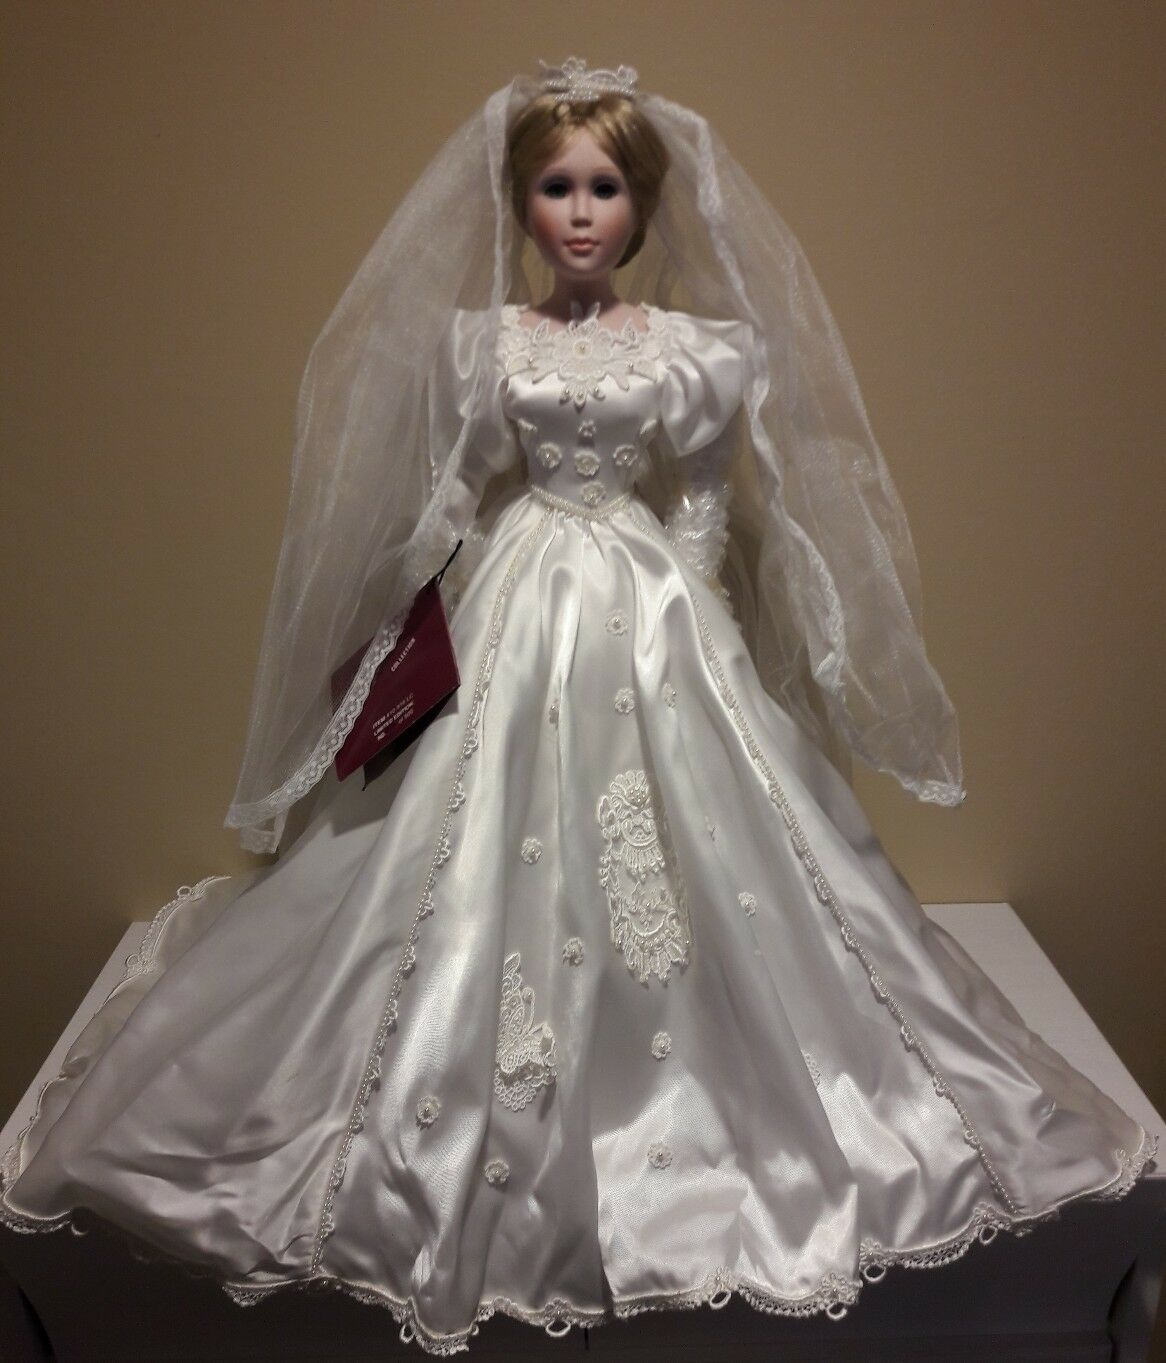 Avia limited collection porcelain bambola bambola bambola in wedding dress CYNTHIA limited edizione b3529b